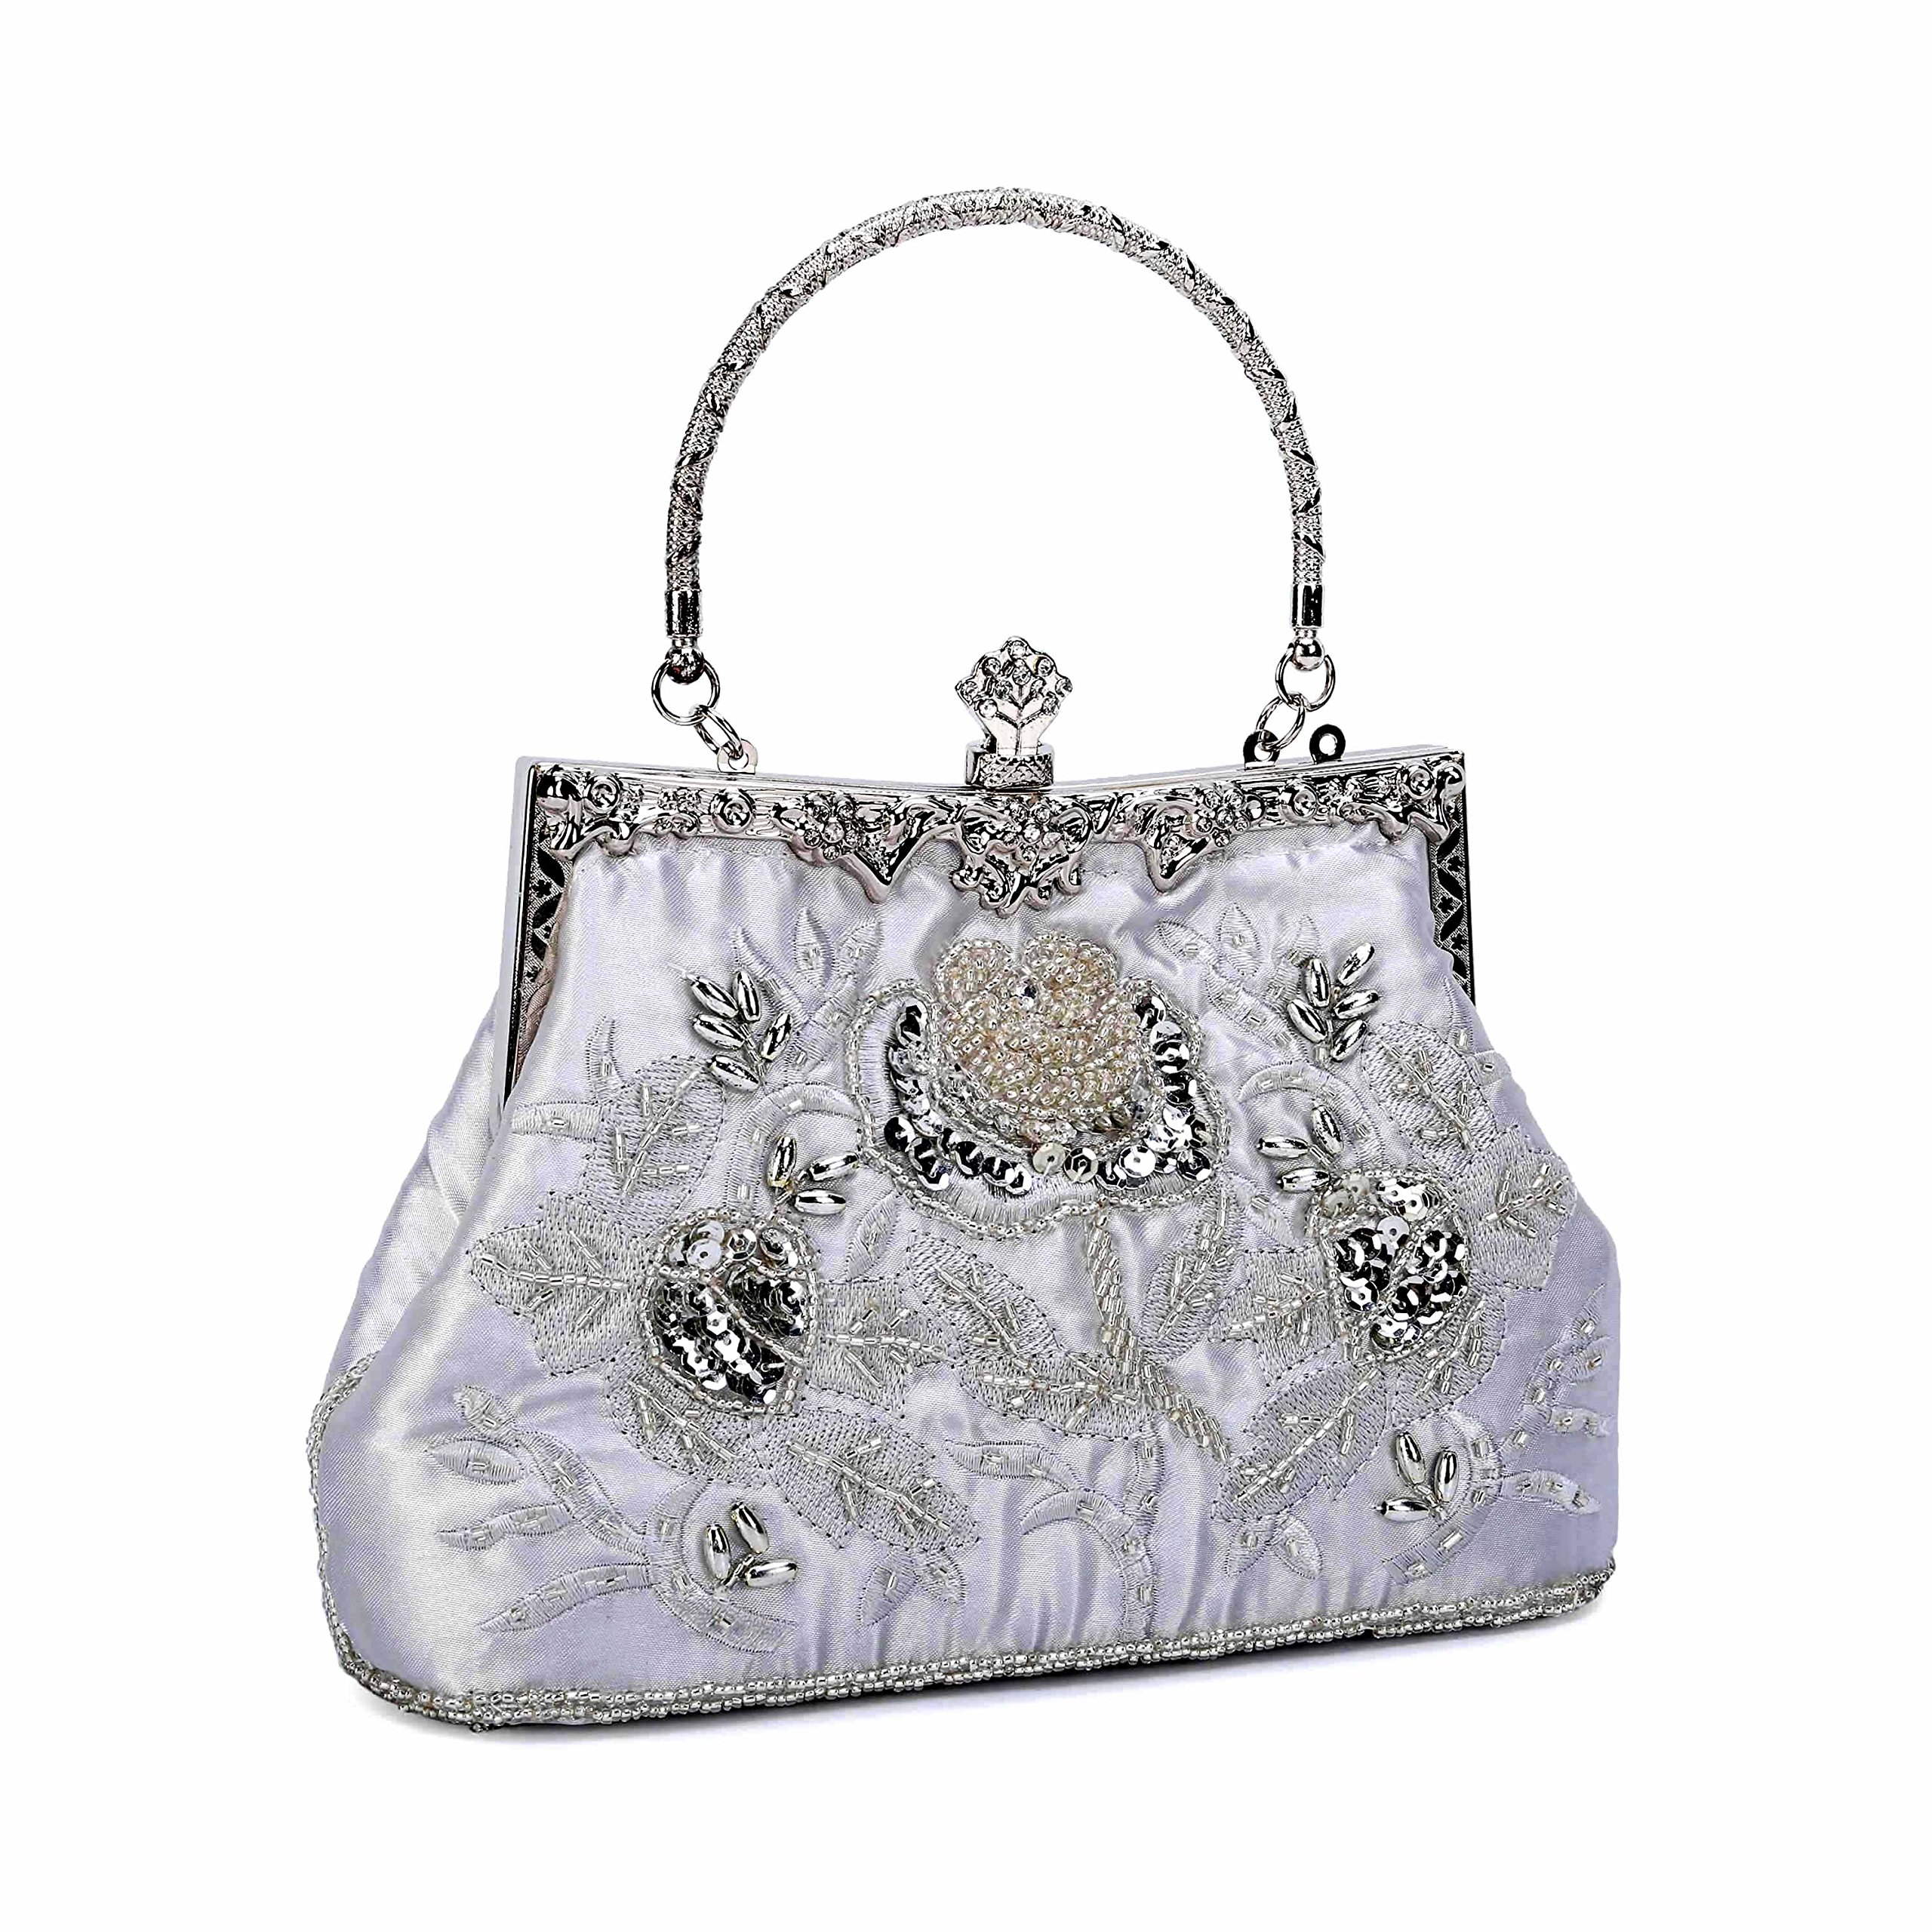 UBORSE Women's Embroidered Beaded Sequin Evening Clutch Large Wedding Party Purse Vintage Bags (Silver)